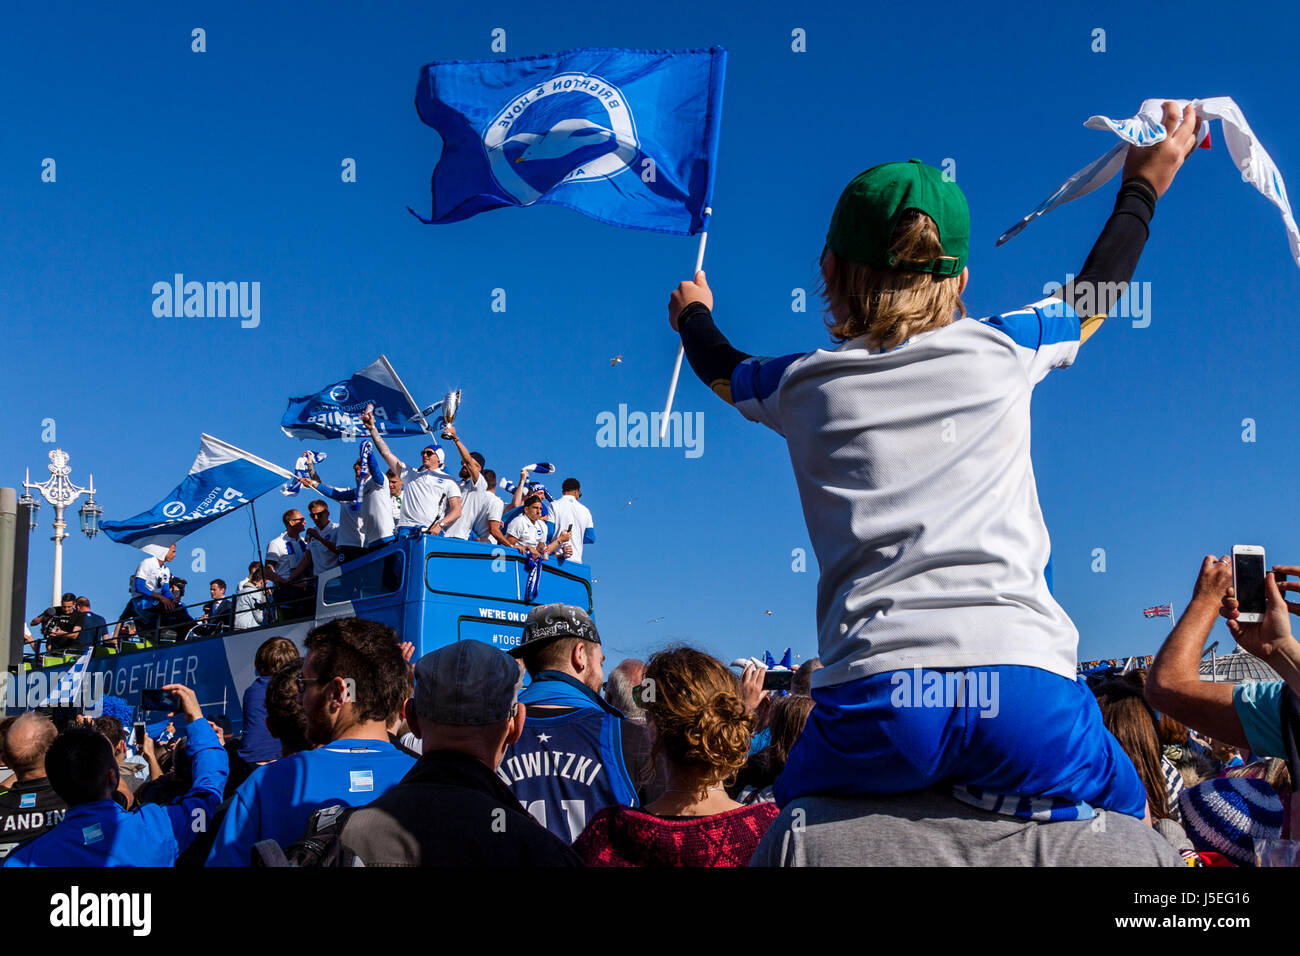 A Cheering Young Brighton and Hove Albion Football Fan Watches As The Team Bus Passes During The Club's Promotion - Stock Image